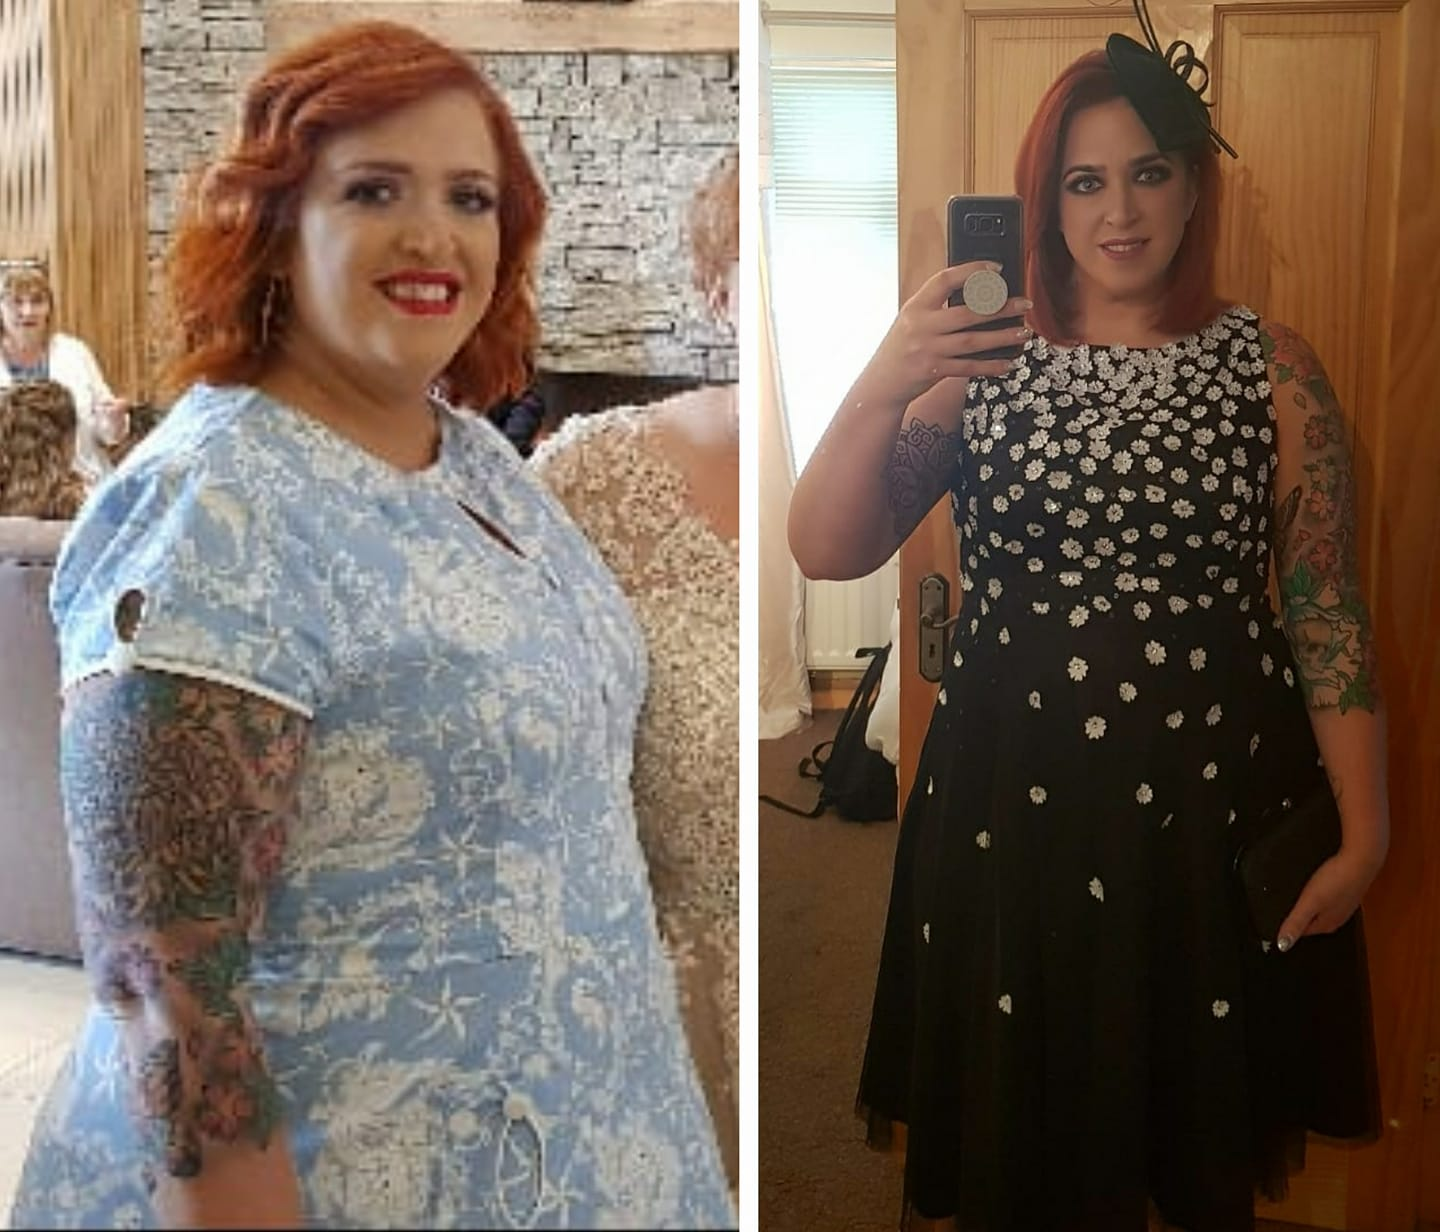 Weight Loss With FATnosis - Ulster Hypnotherapy